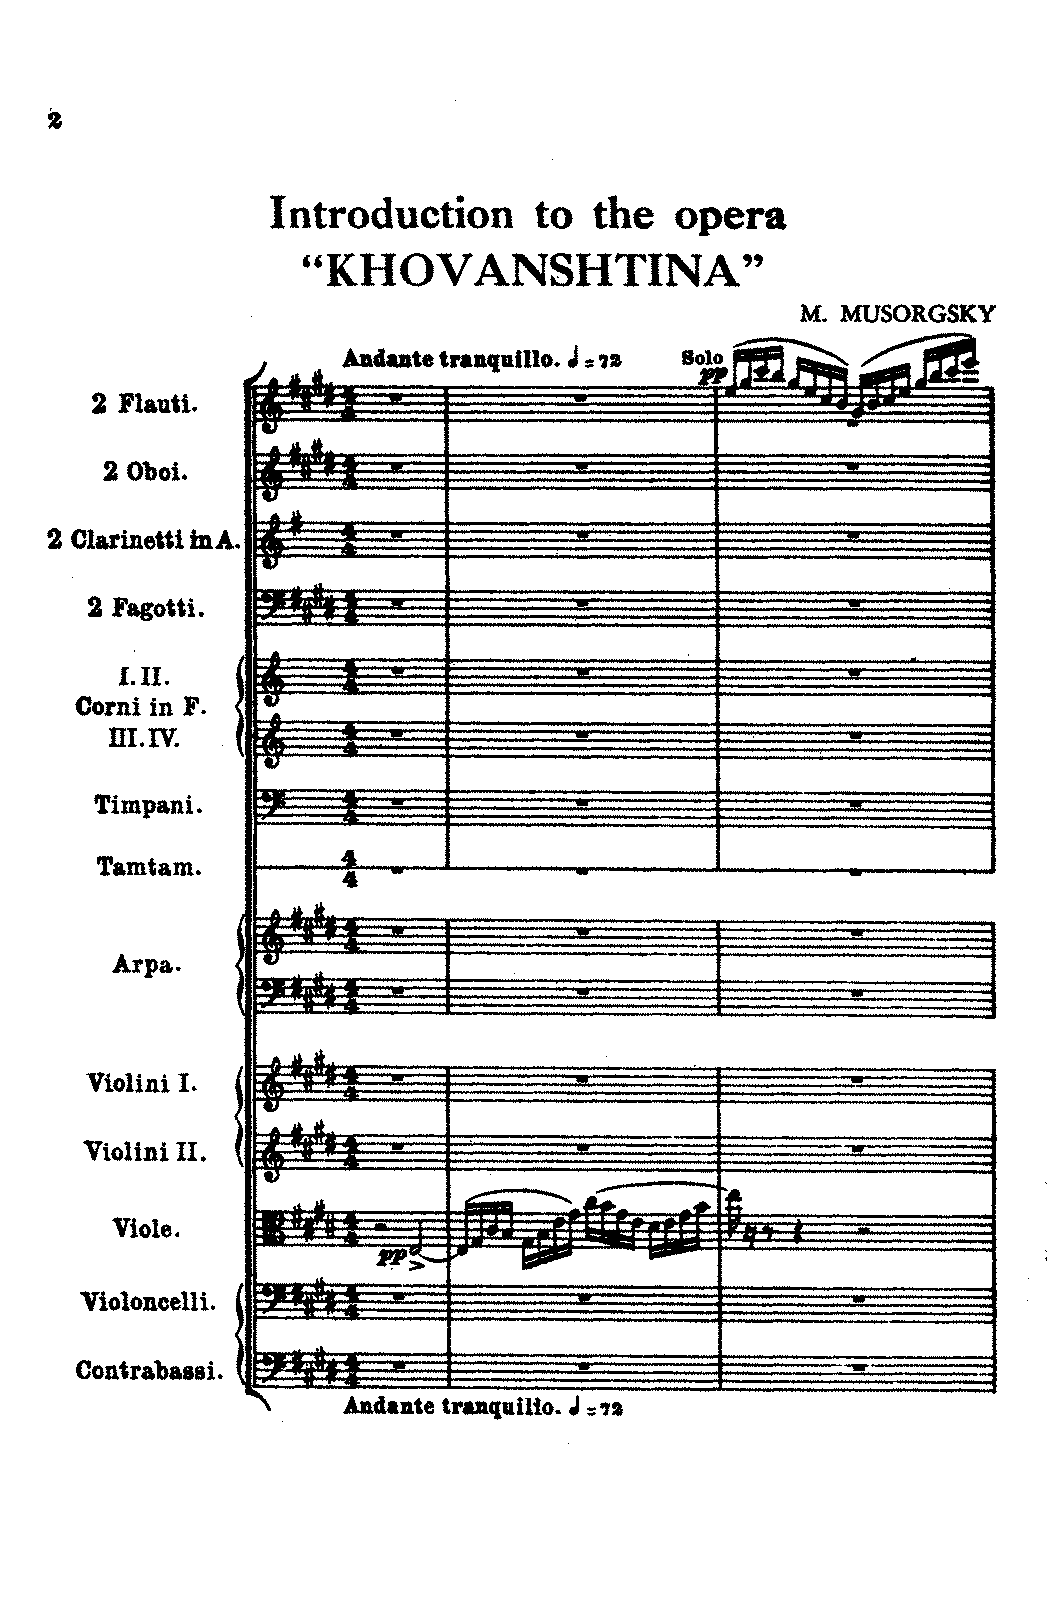 PMLP59631-Mussorgsky - Khovanshina (Introduction).pdf